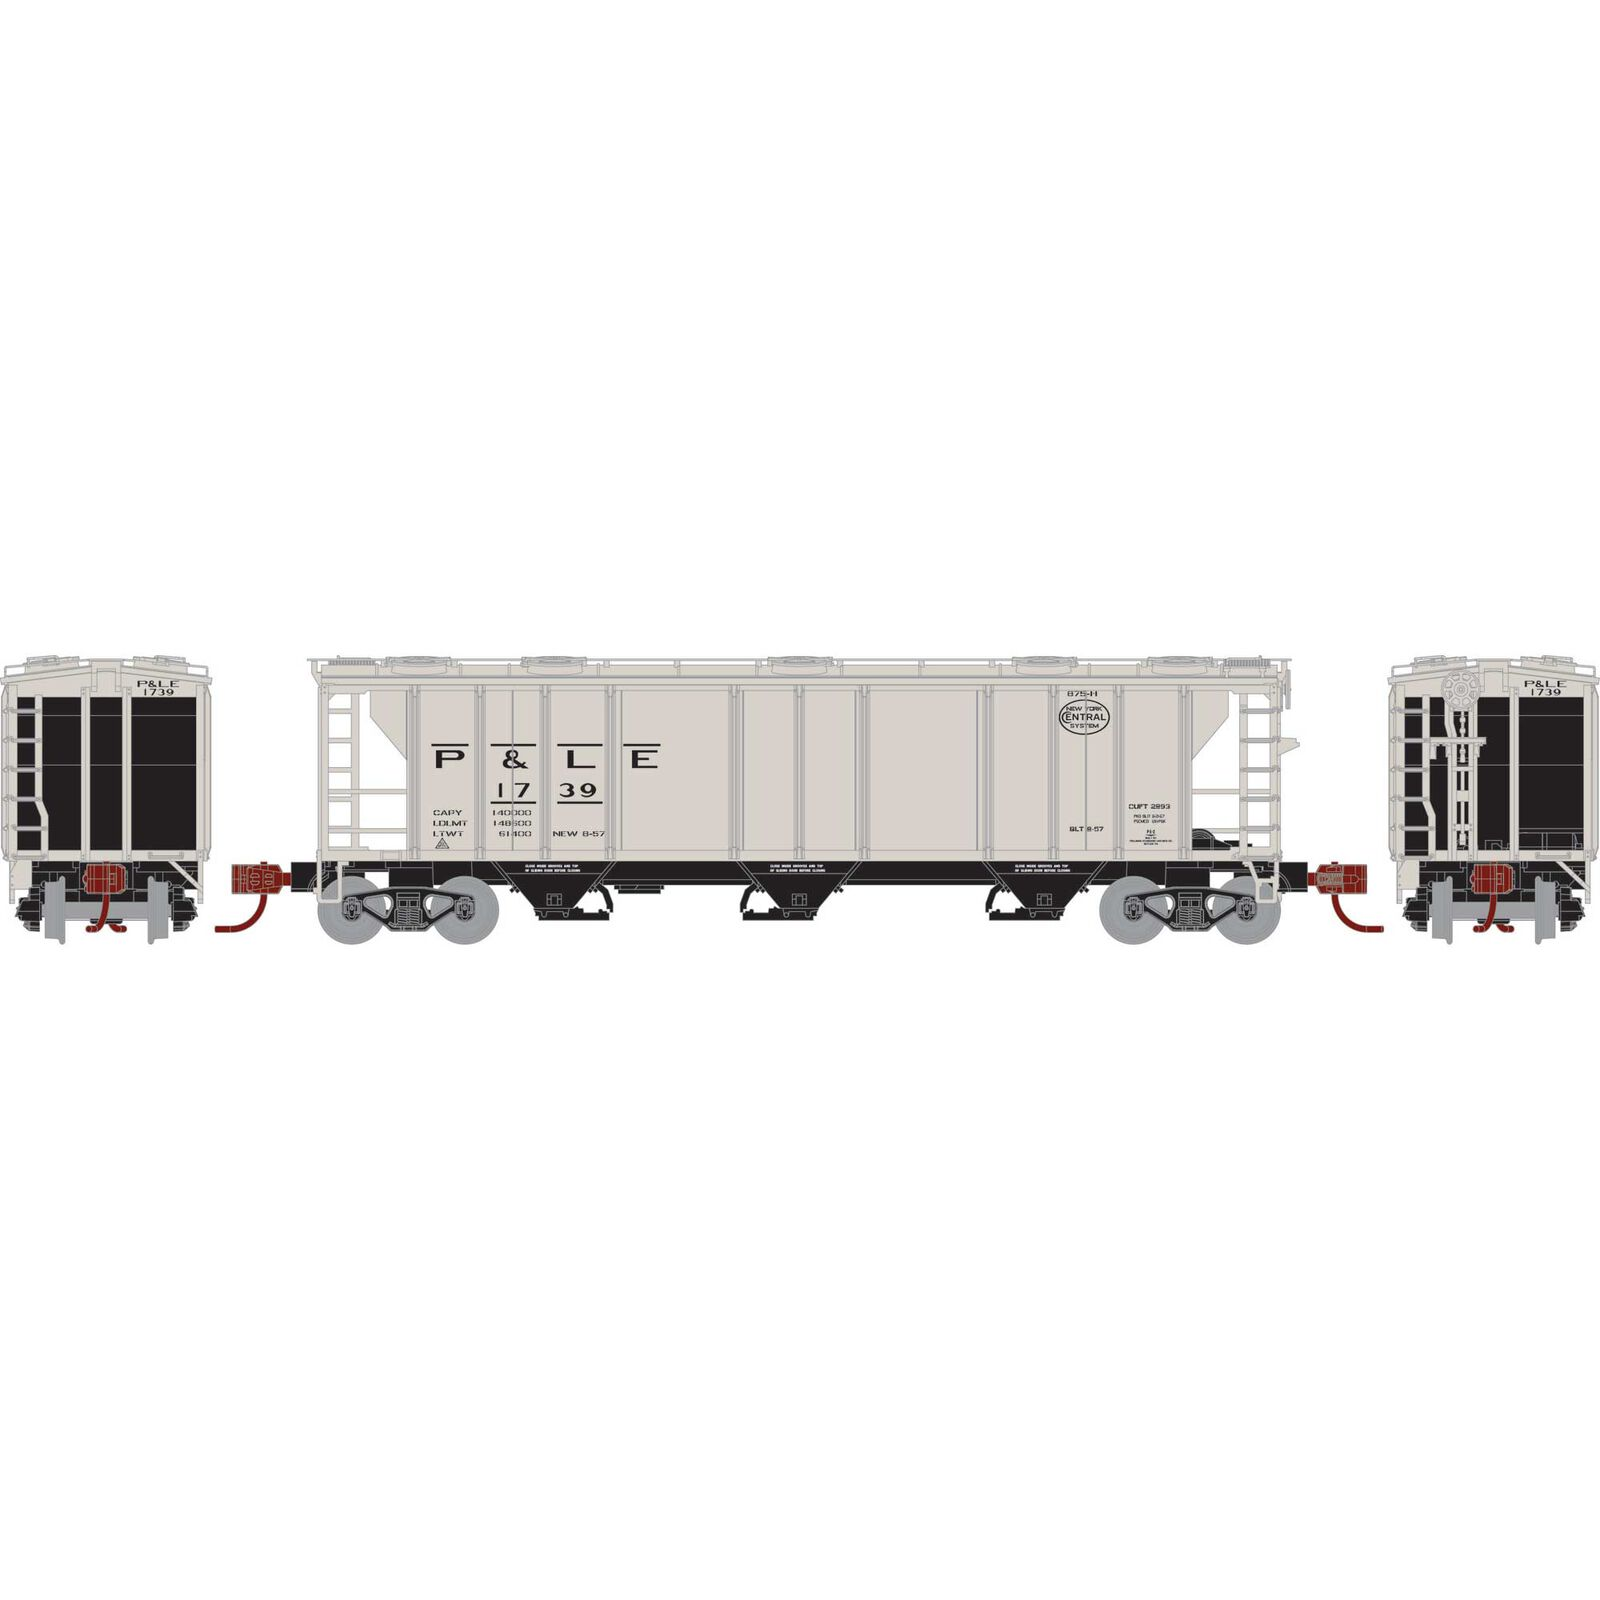 N PS-2 2893 3-Bay Covered Hopper, P&LE #1739